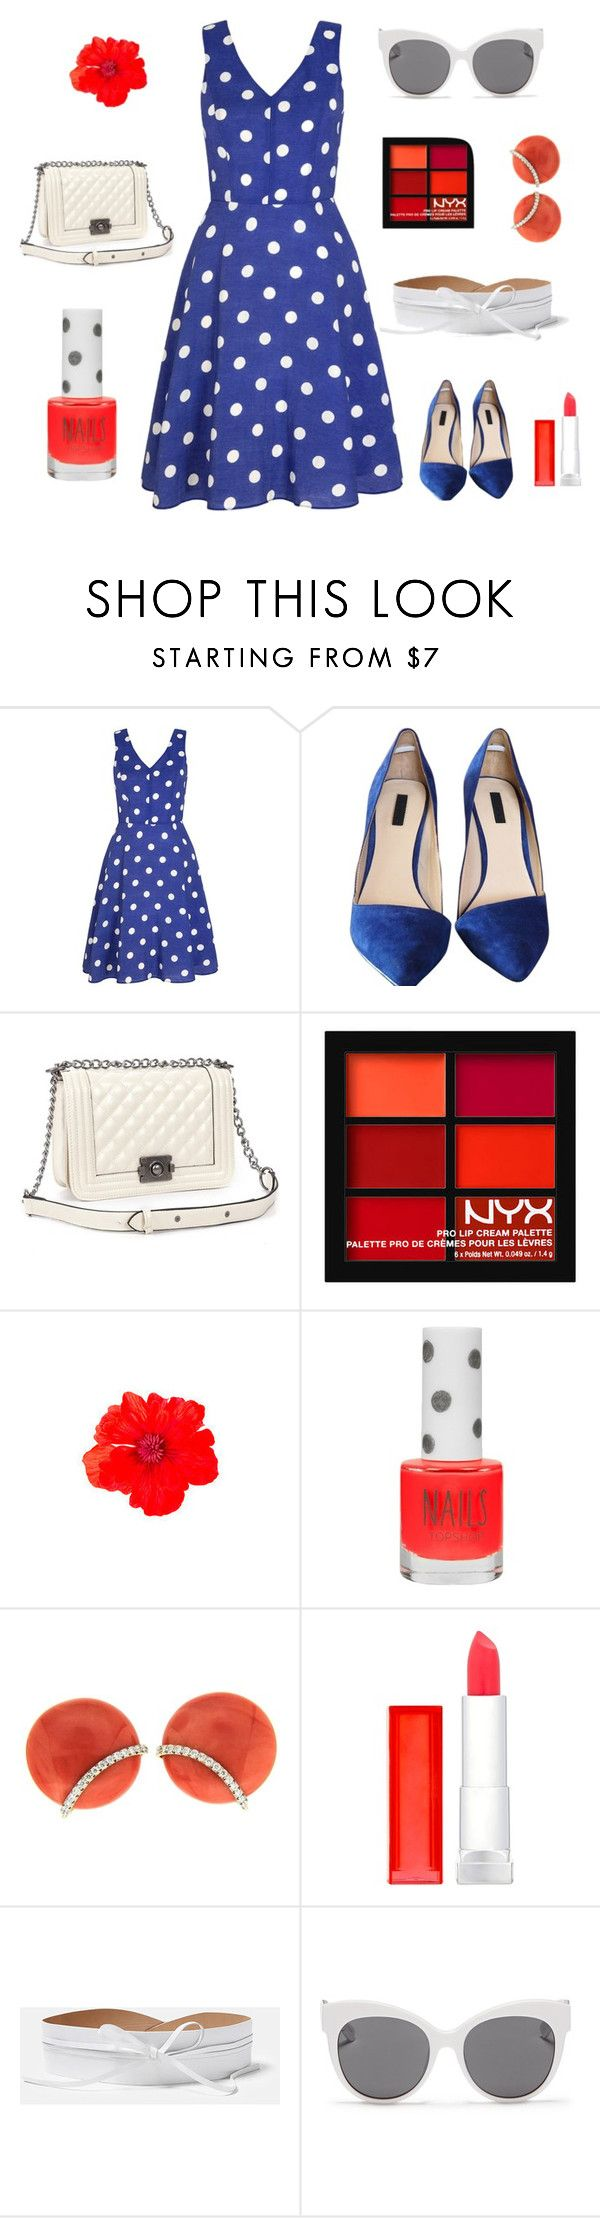 Винтаж часы ответ лук by gala-bell on Polyvore featuring Yumi, Matiko, Relaxfeel, Valentin Magro, Blanc & Eclare, Lafayette 148 New York, Maybelline, Topshop, women's clothing and women's fashion